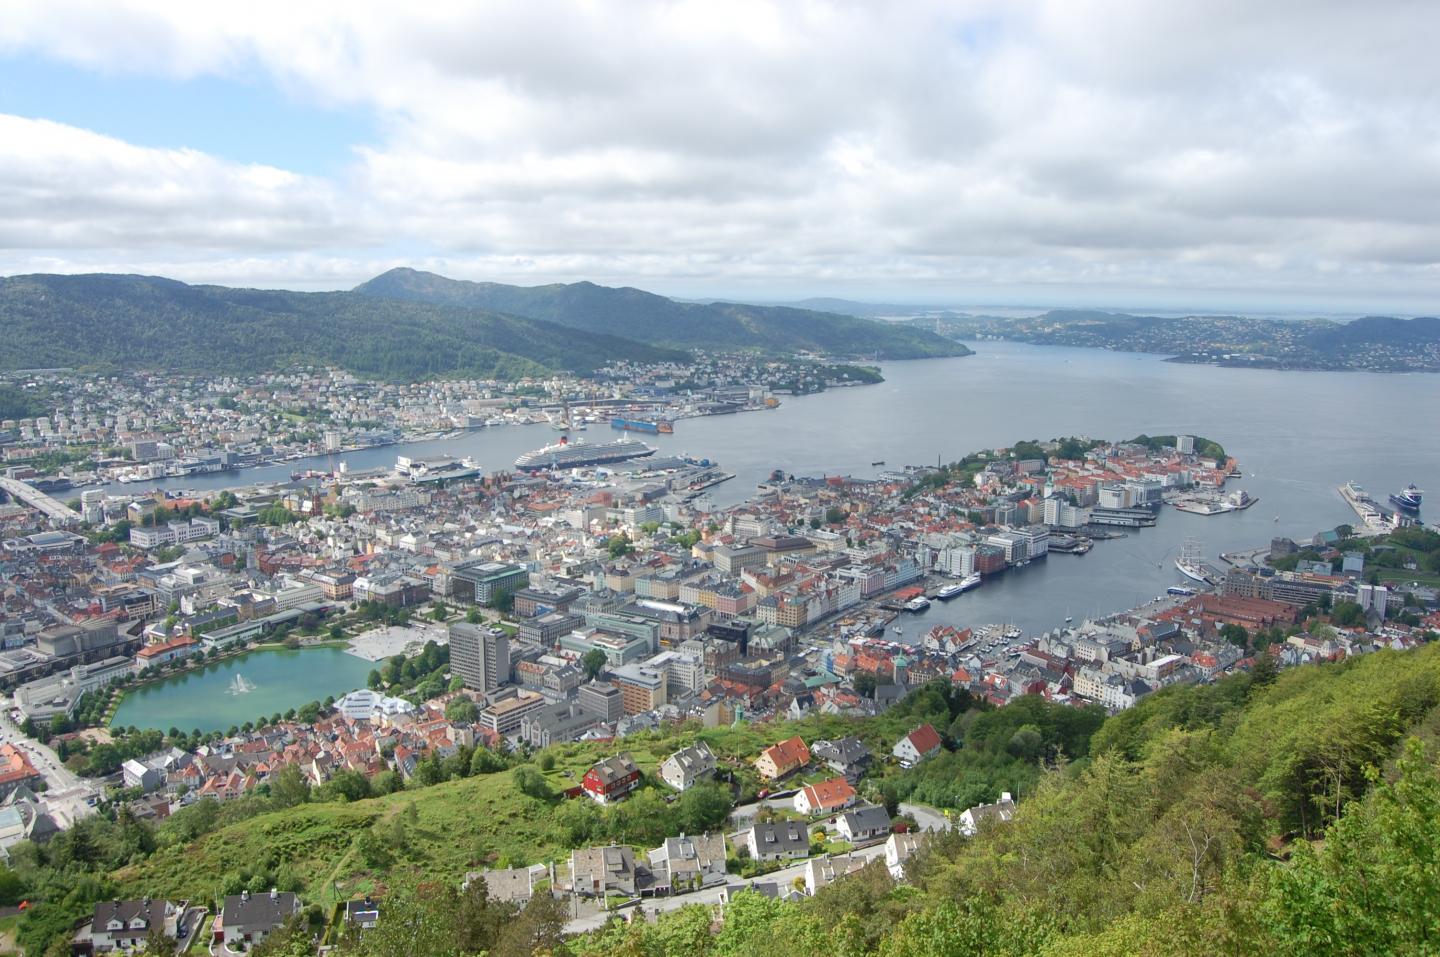 View of Bergen seen by teenage travelers during summer youth travel program in Scandinavia